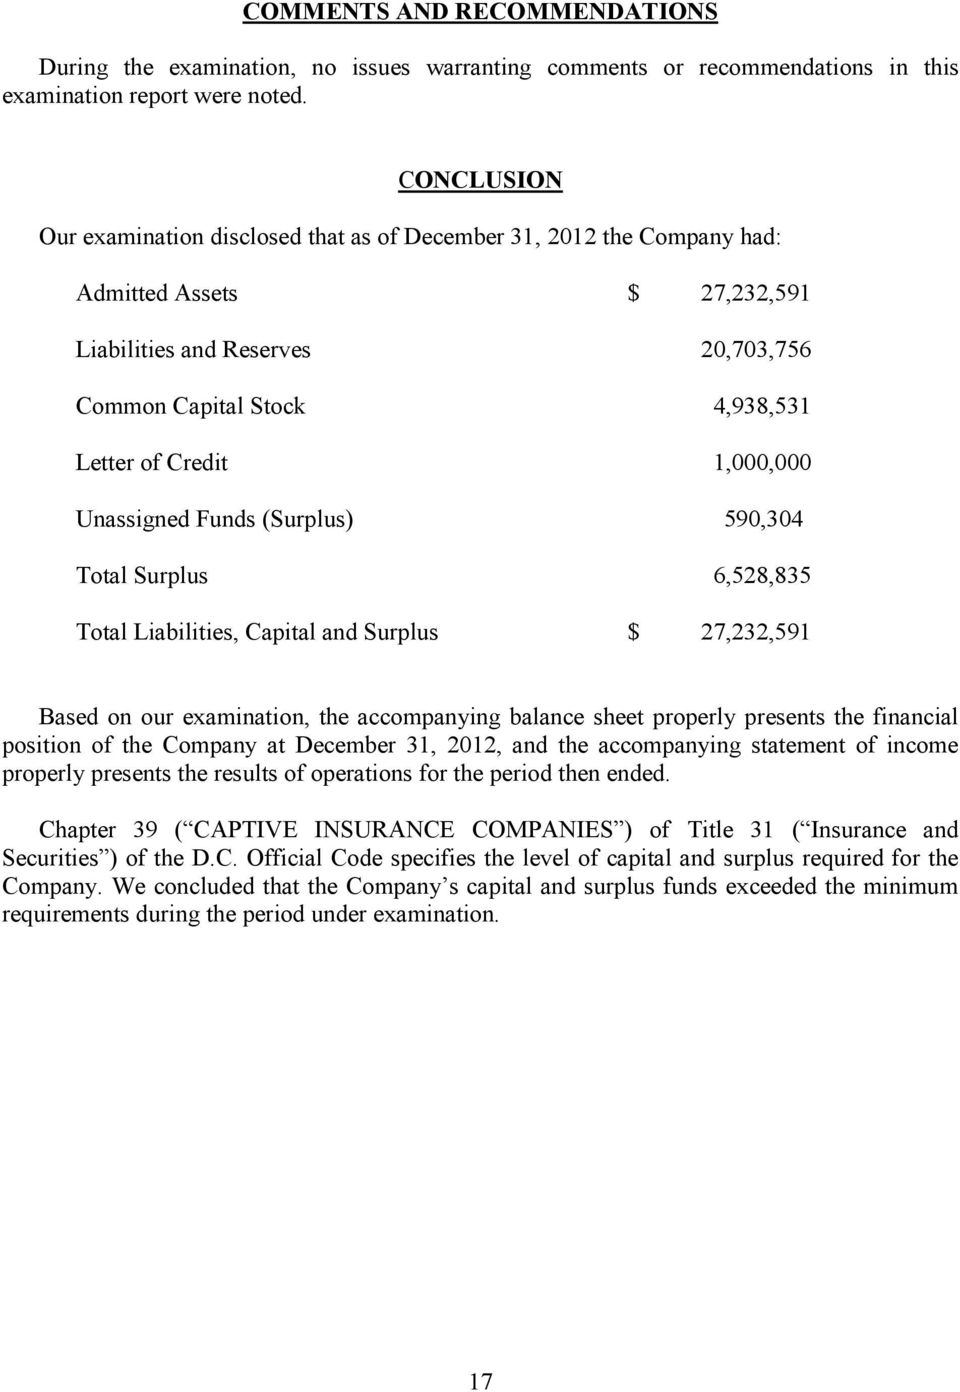 1,000,000 Unassigned Funds (Surplus) 590,304 Total Surplus 6,528,835 Total Liabilities, Capital and Surplus $ 27,232,591 Based on our examination, the accompanying balance sheet properly presents the